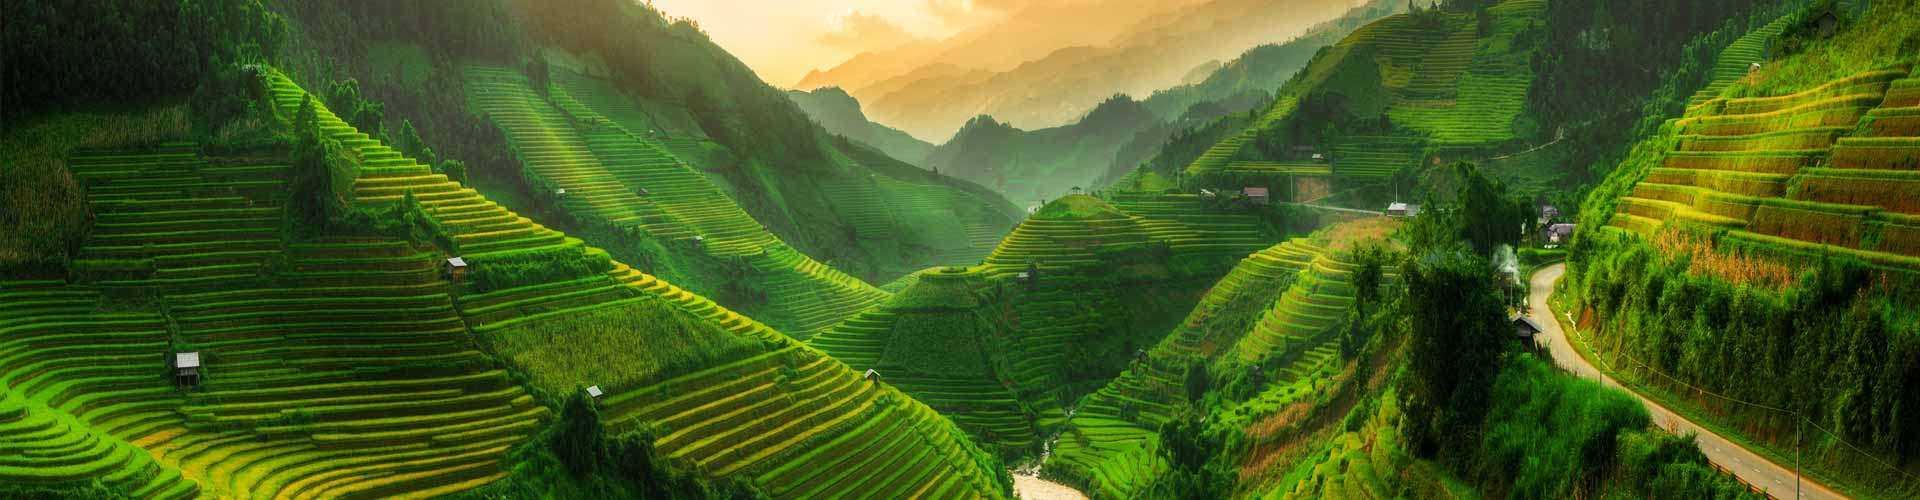 Vietnam Holidays 2017/2018 - Vietnam Holiday Deals